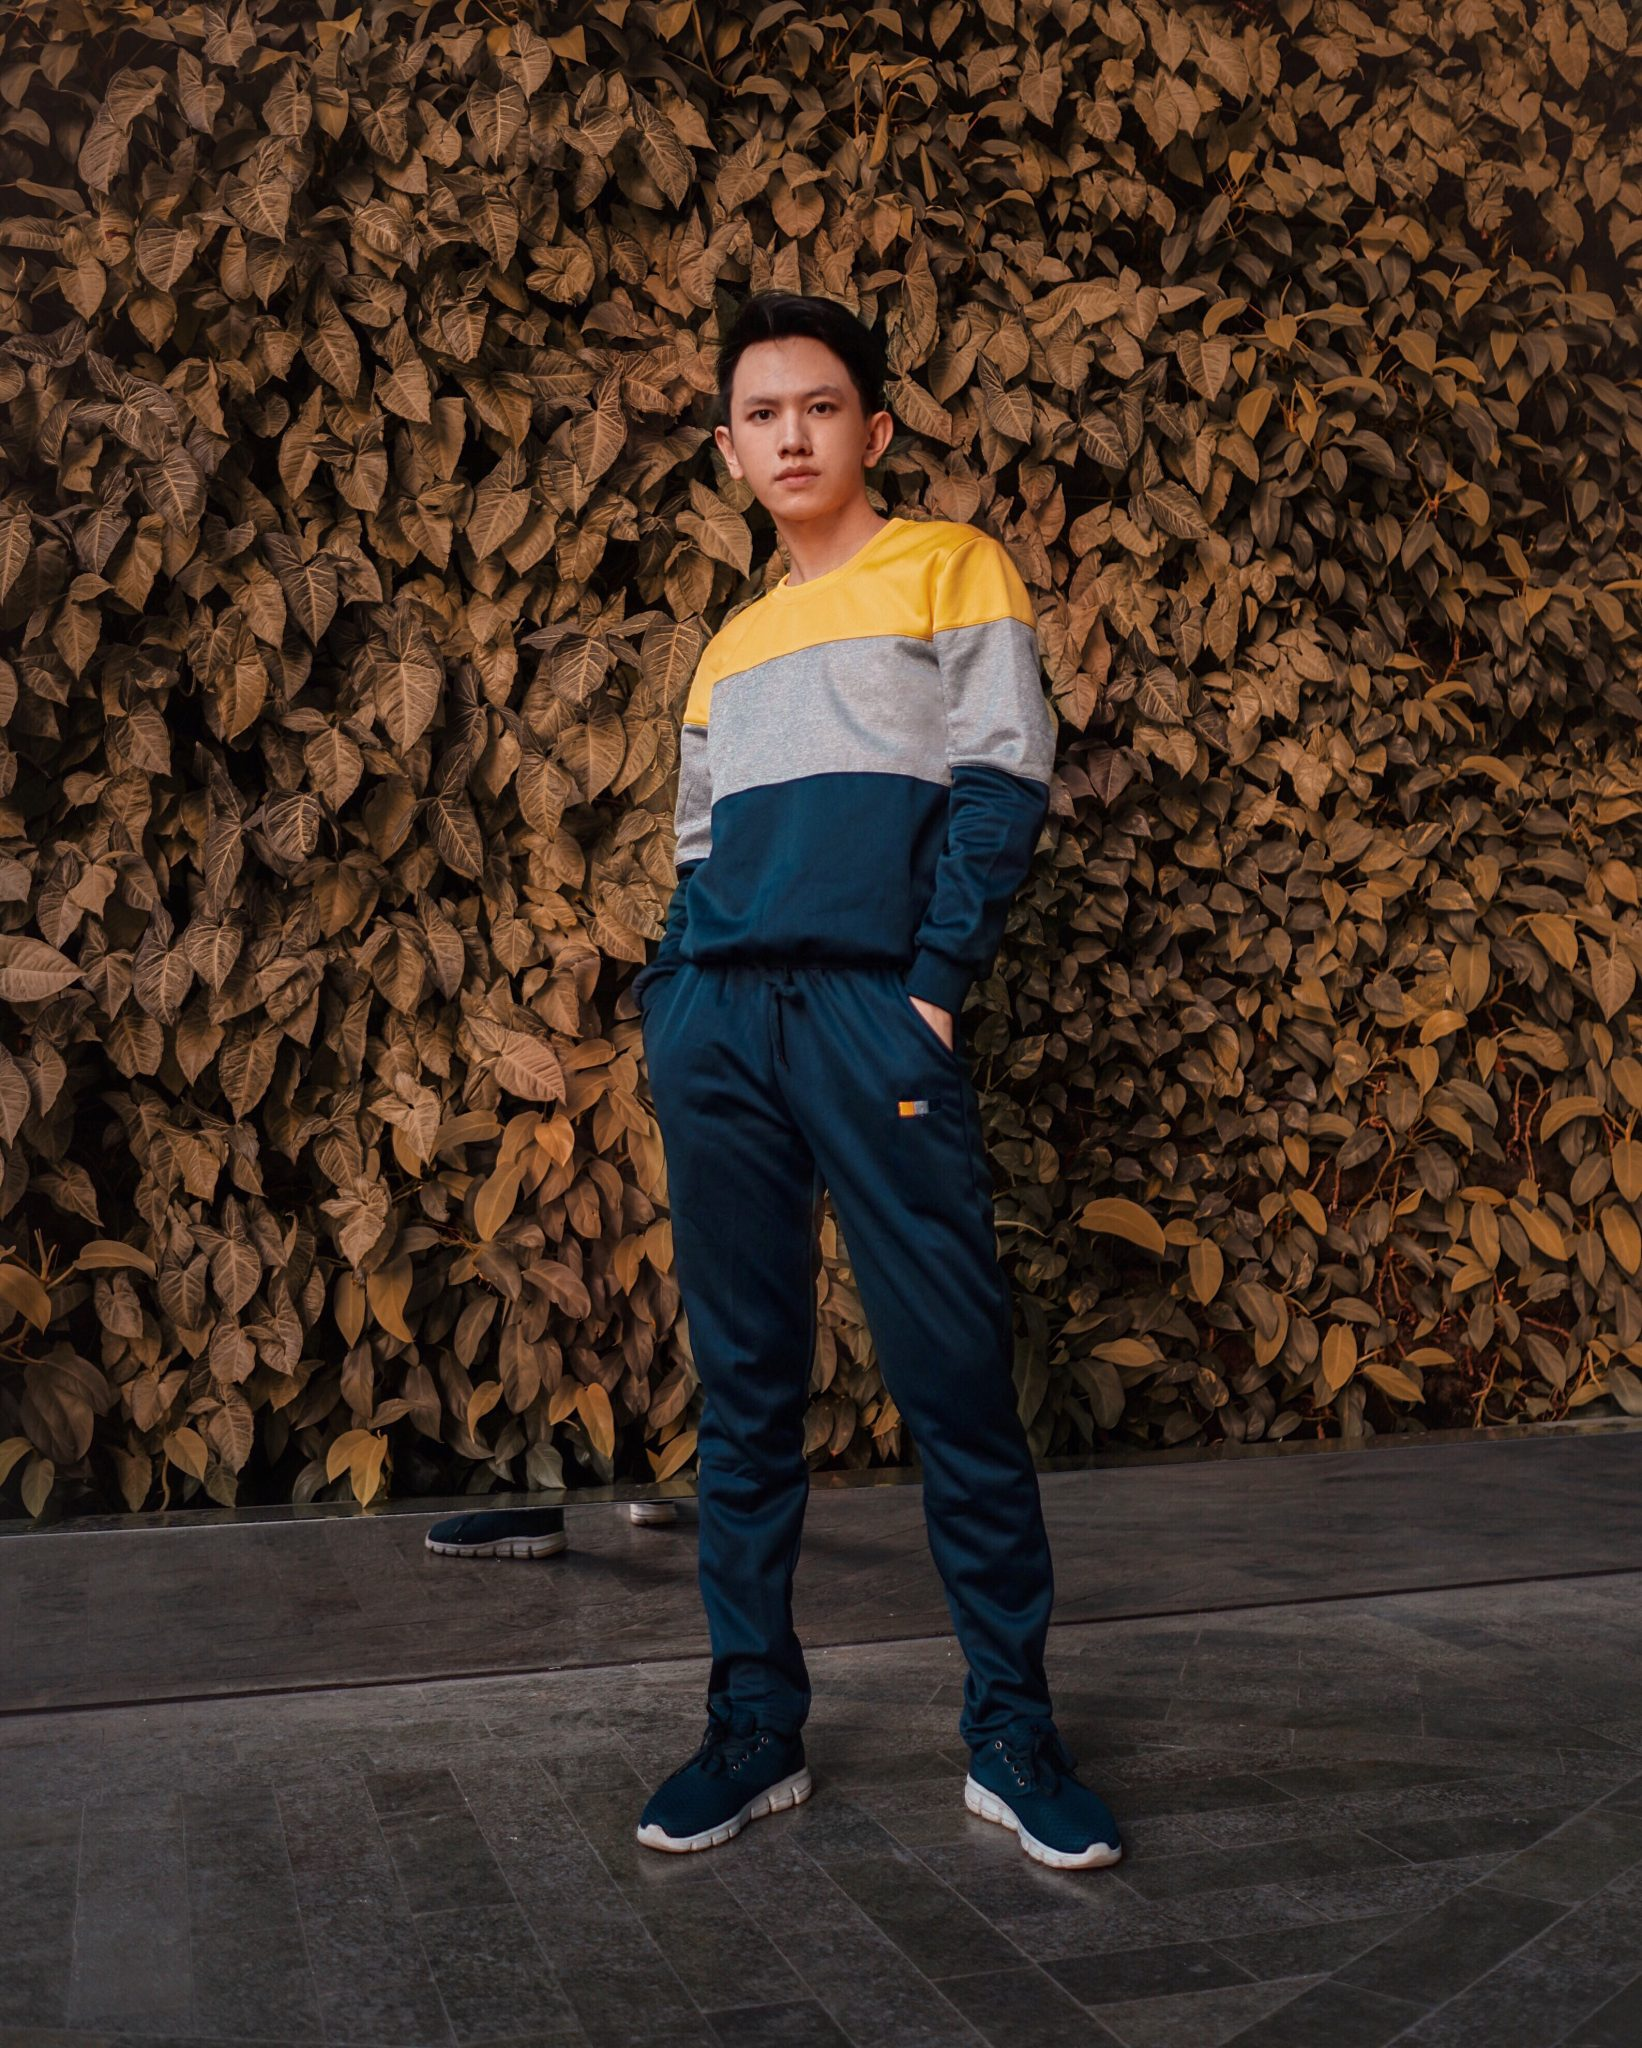 r indonesia lookbook indonesia ootd men influencer indonesia fashion influencer track pants tracksuit color block lifestyle